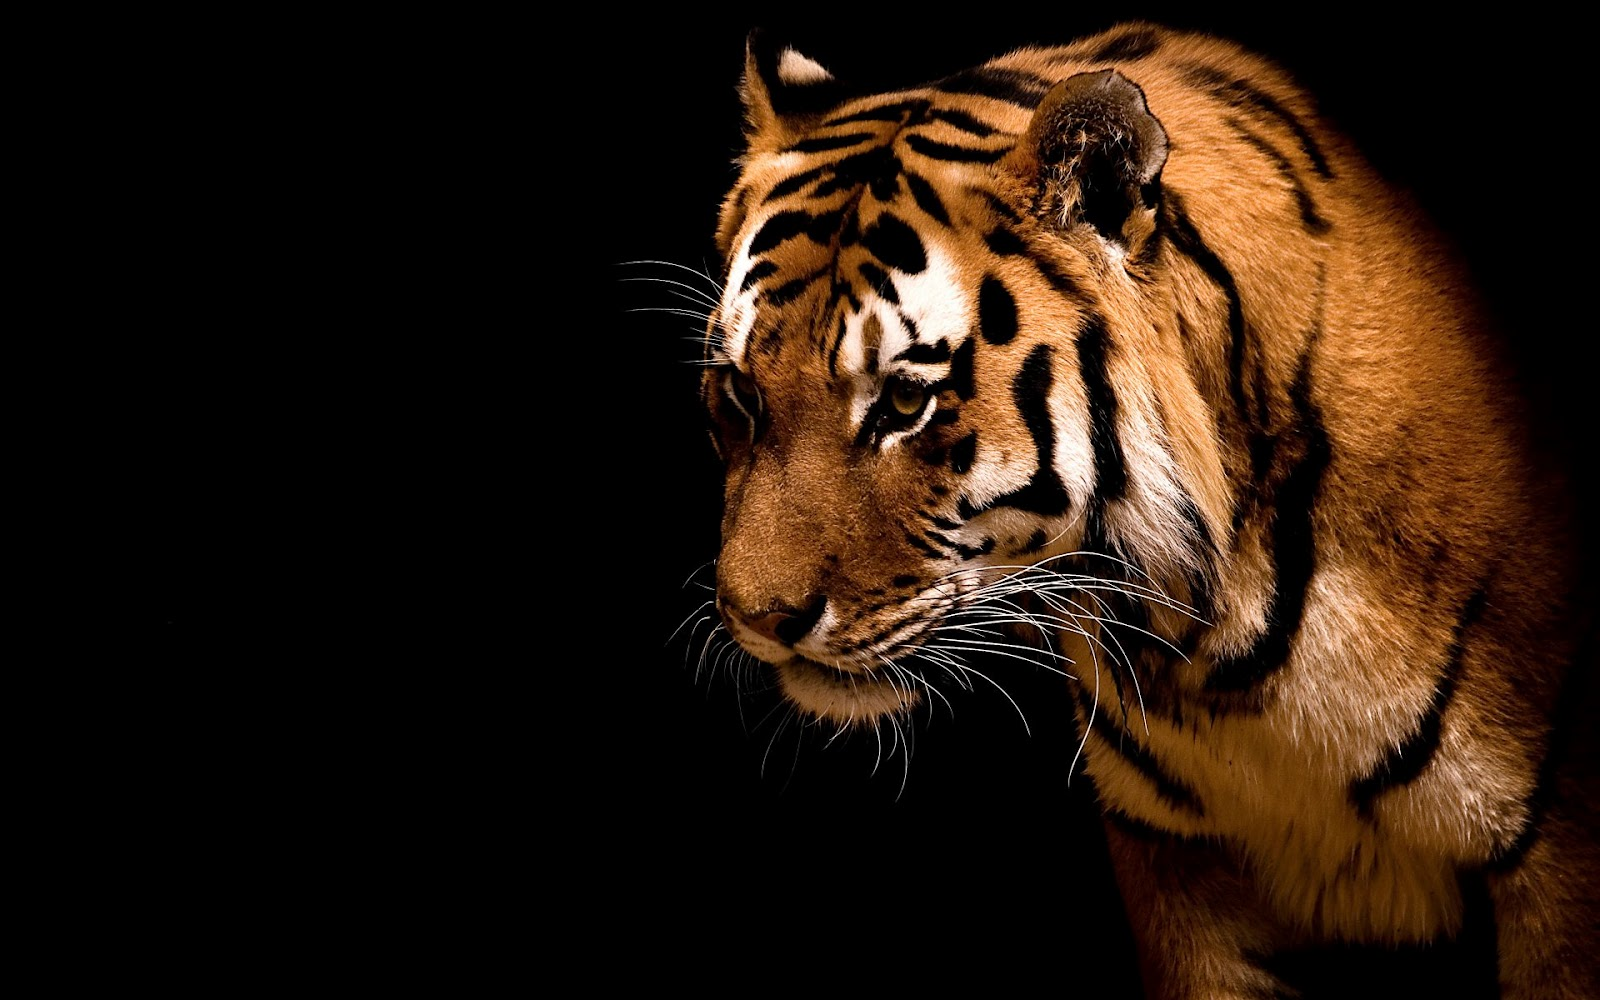 Amazing Wallpapers Of Tigers Unique Wallpaper 1600x1000